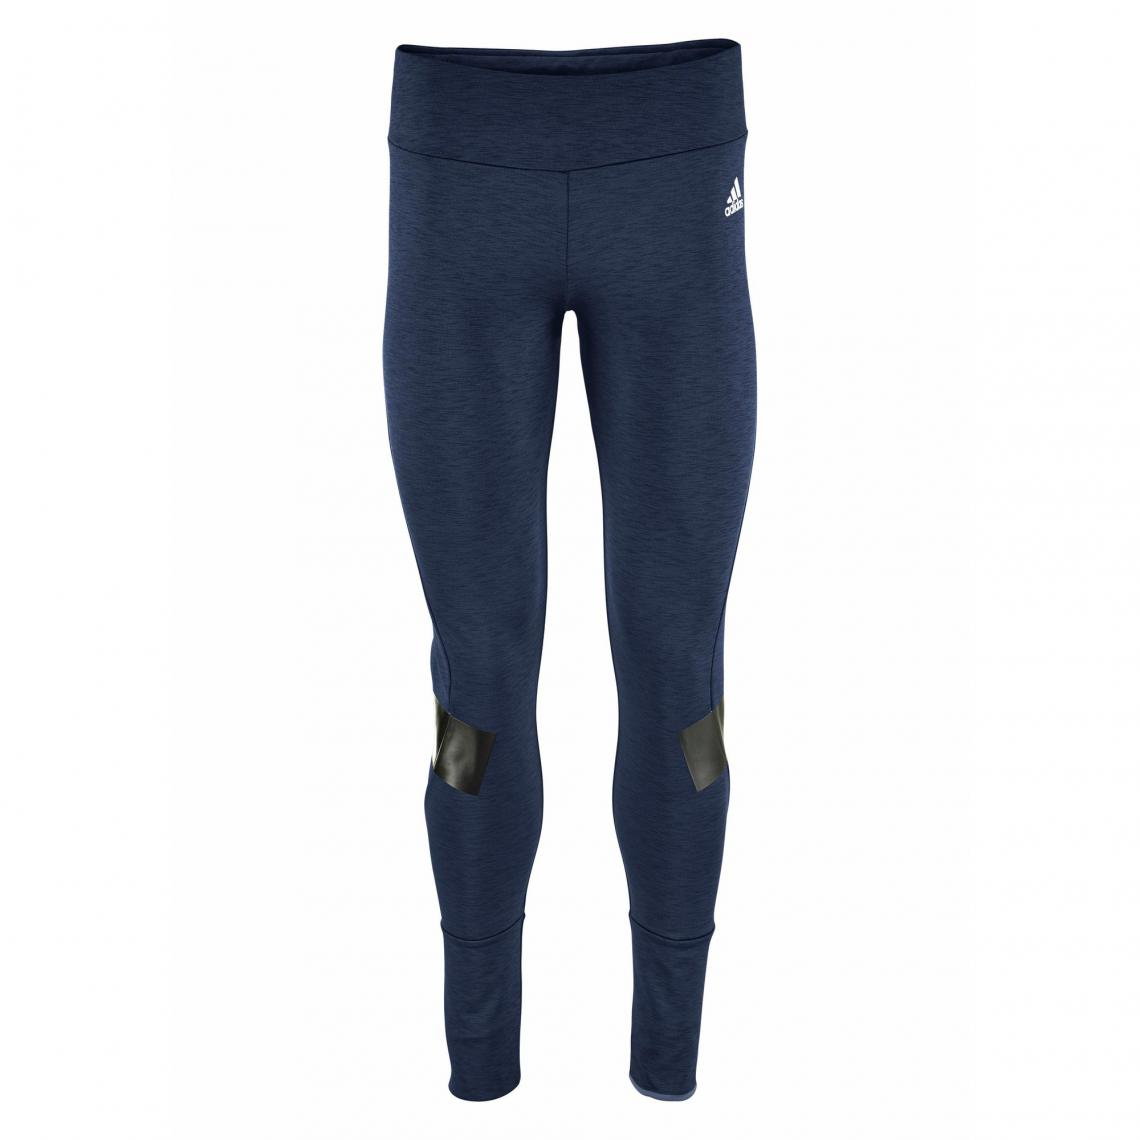 bdac7158d8771 Legging adidas Performance Warmer Tight femme - bleu foncé Adidas  Performance